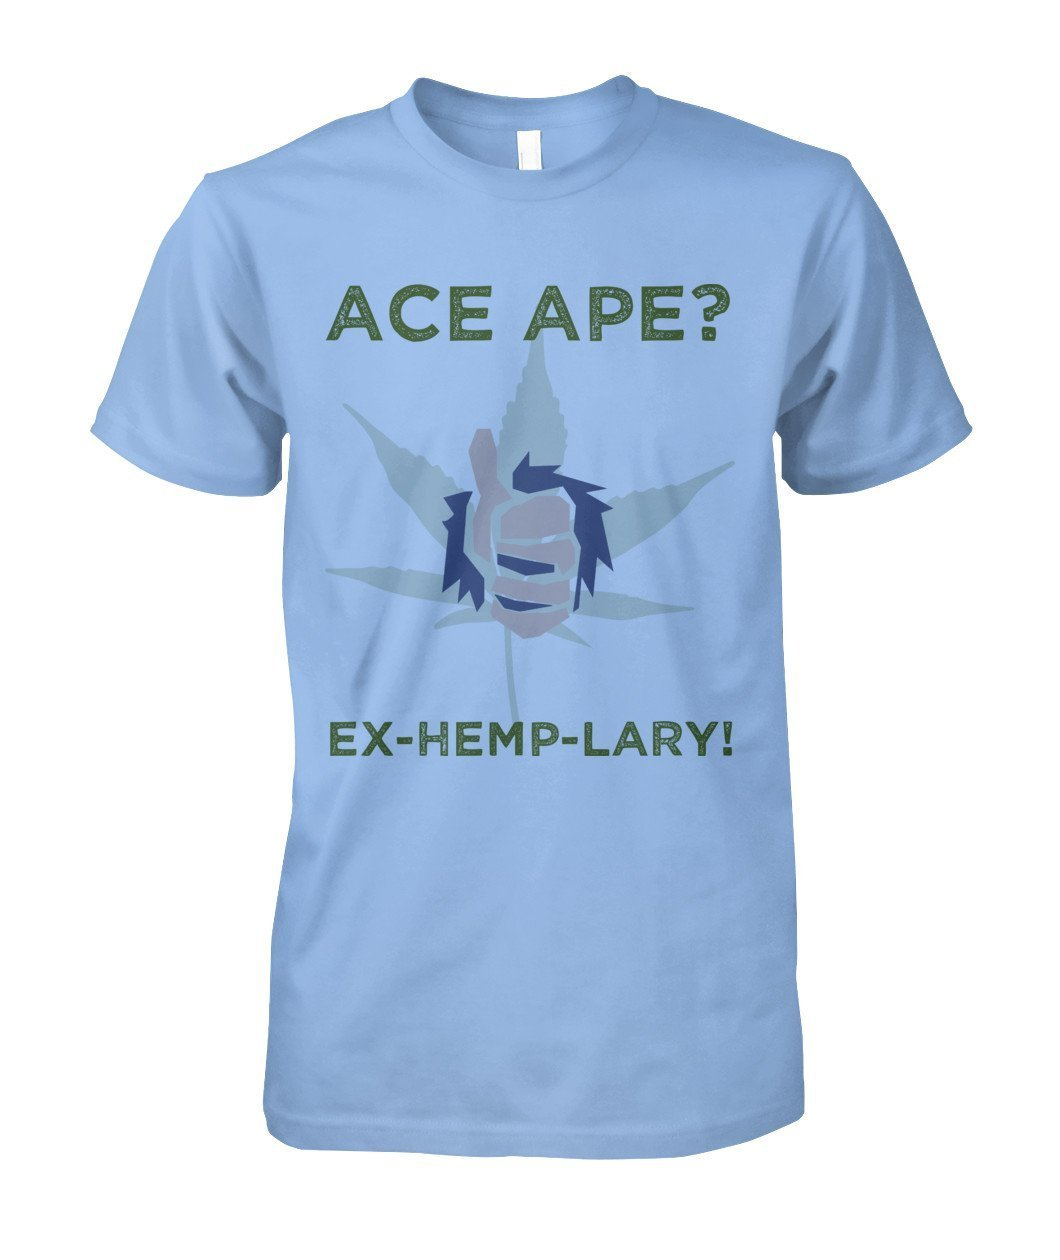 Short Sleeves Light Blue / S Thumbs Up Unisex Cotton Tee AceApe CBD Dispensary